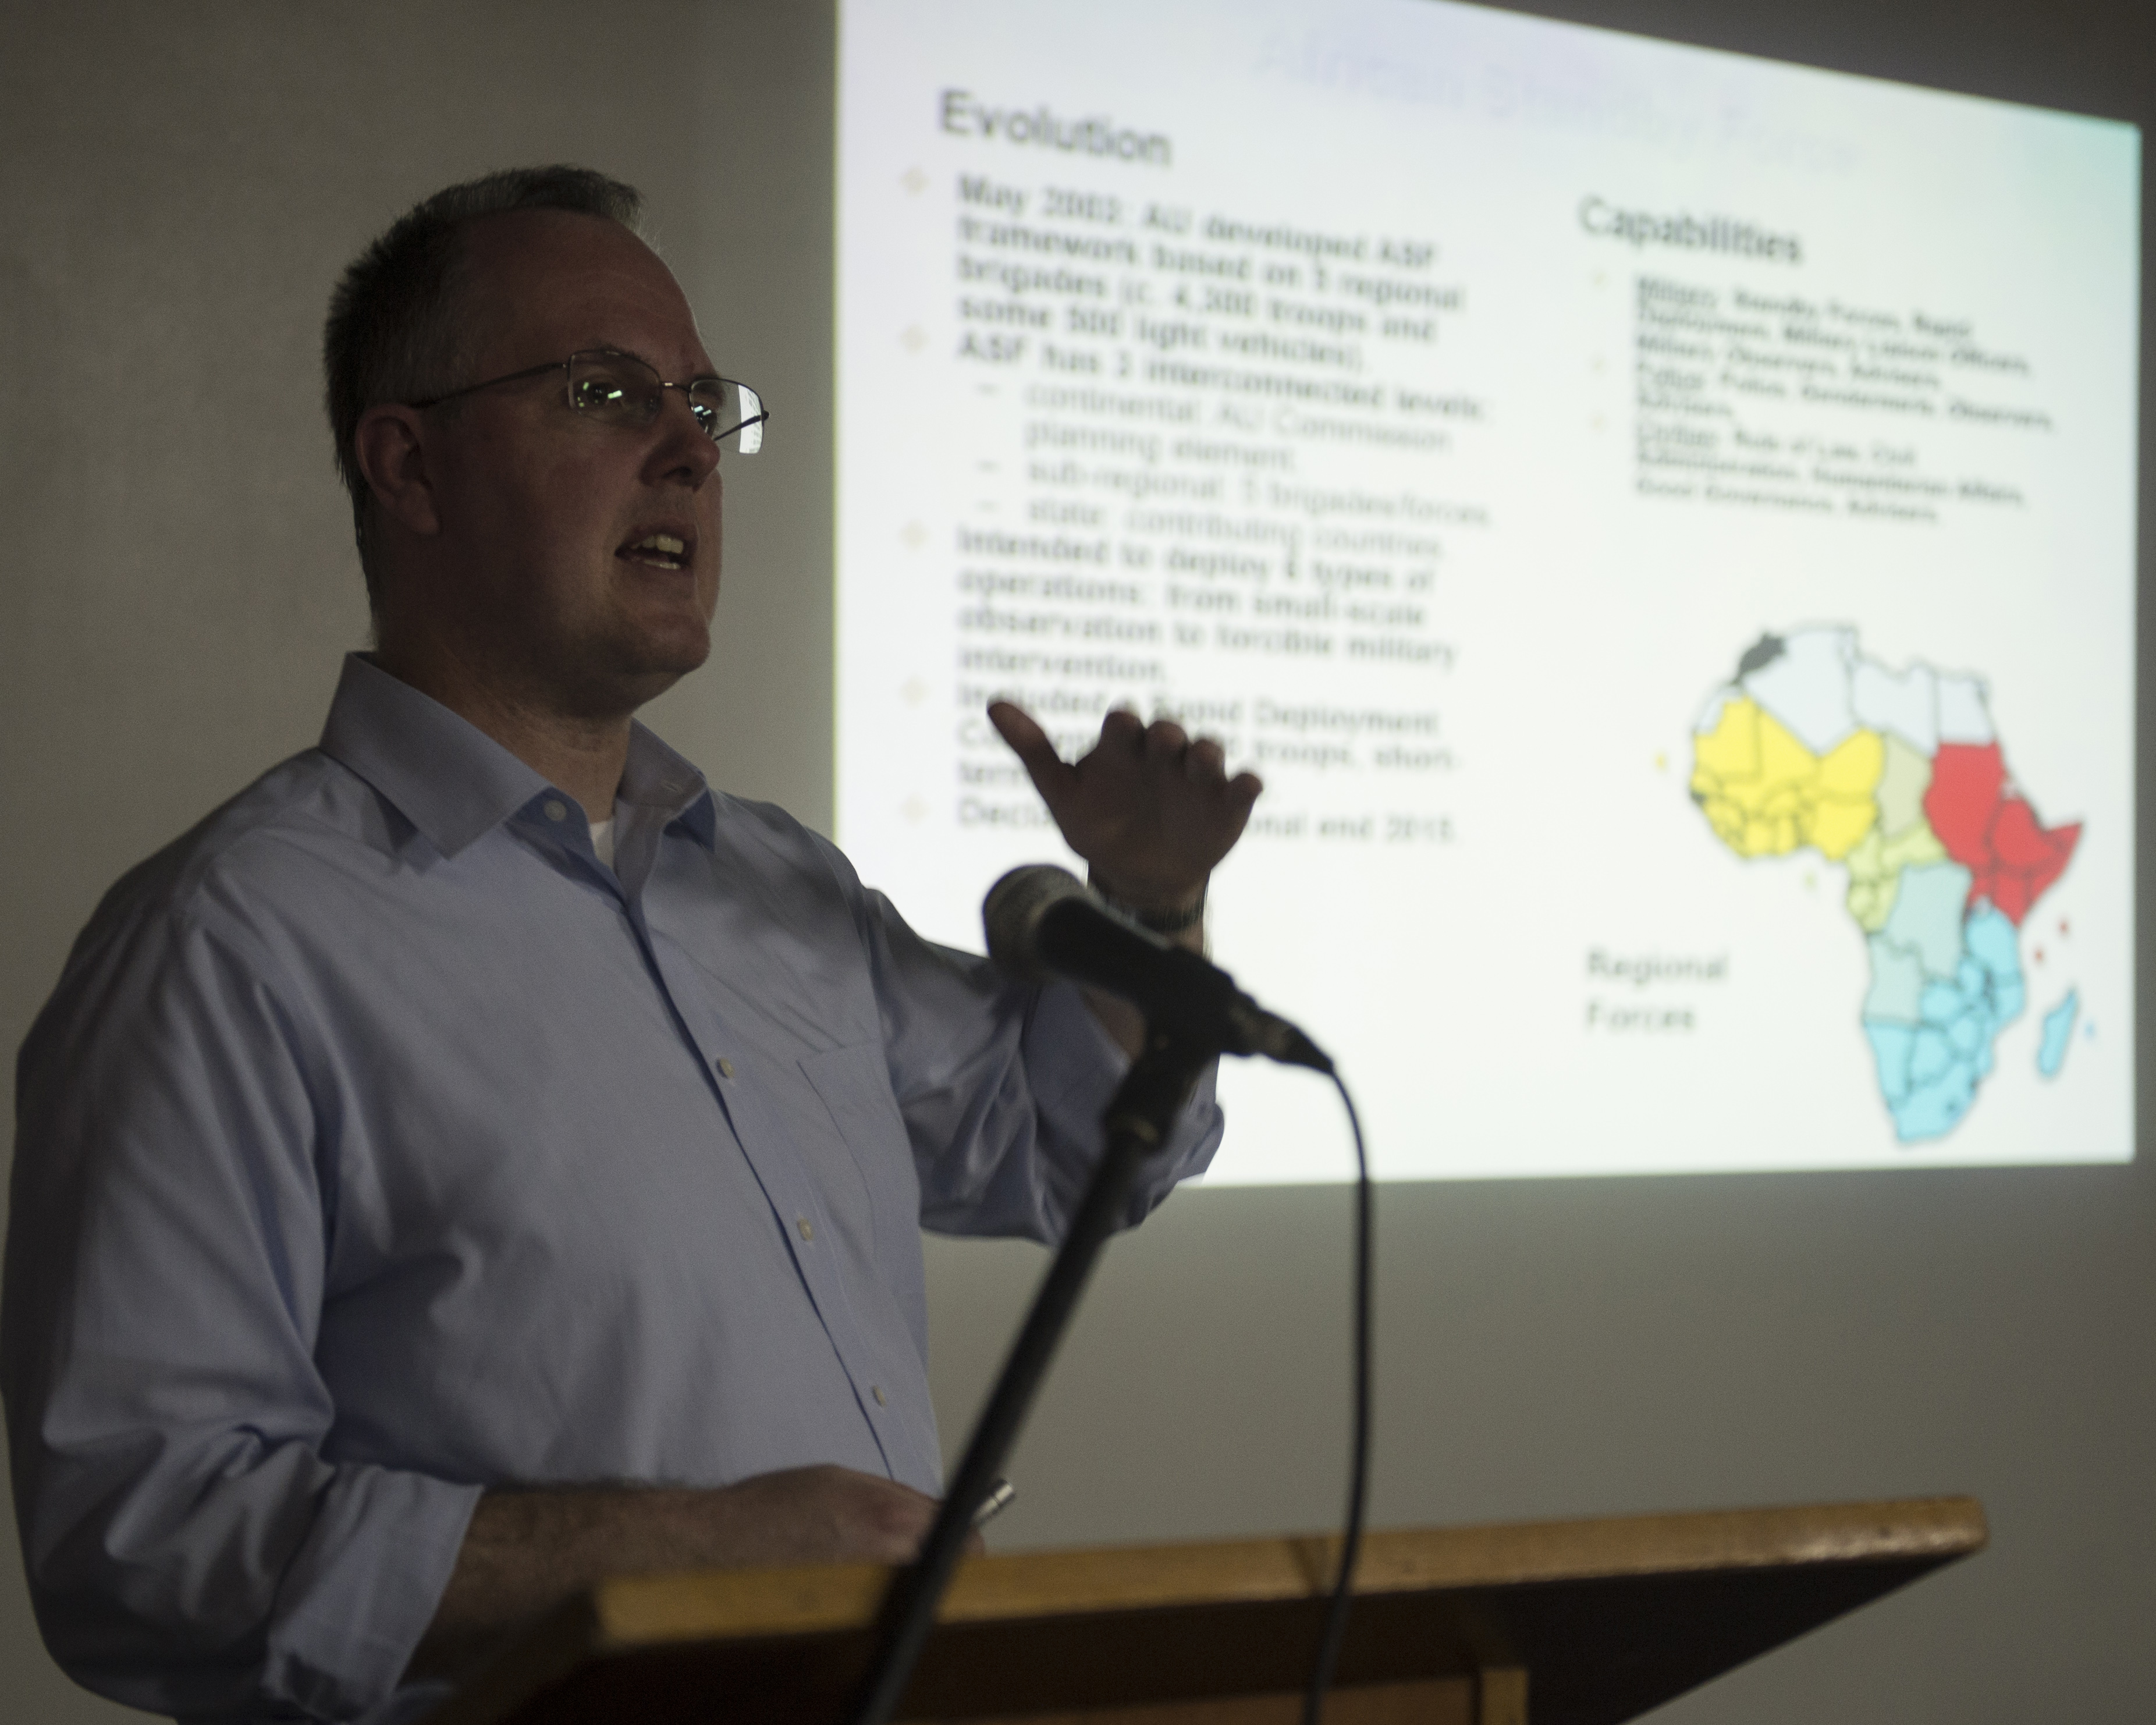 Dr. Paul D. Williams, Africa Center for Strategic Studies guest speaker, discusses Africa's peace and security architecture Mar. 2, 2016, at Camp Lemonnier, Djibouti. The Africa Center for Strategic Studies is a Department of Defense organization dedicated to supporting U.S. foreign and security policies. Combined Joint Task Force-Horn of Africa hosted the ACSS to discuss current issues and to learn more about the countries in East Africa. (U.S. Air Force photo by Staff Sgt. Peter Thompson)